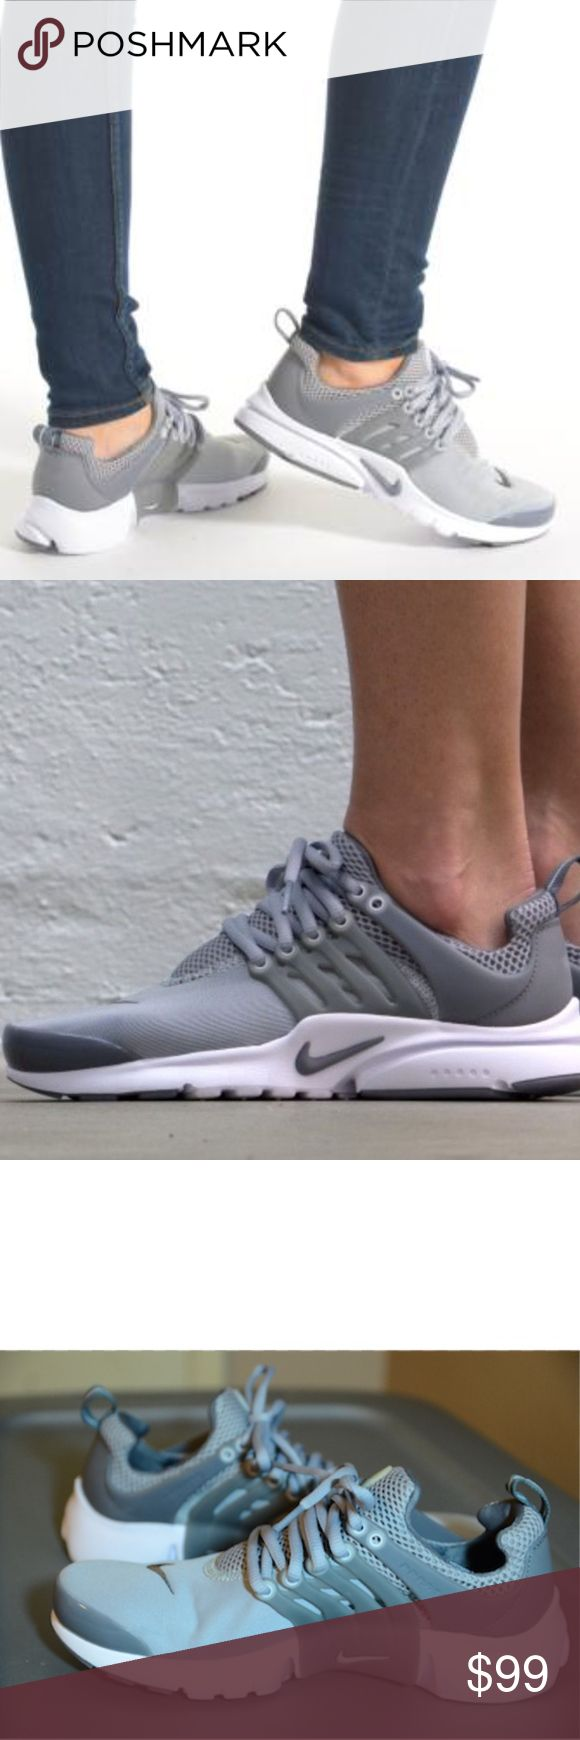 Women's/Girls Nike Air Presto (Size 7y/8.5w) Brand New in box 100% Authentic Excellent Condition Size: 7y(youth)= Fits Size 8.5 women Gray/White Colorway Ships doubled boxed Same day/Next day Shipping provided Nike Shoes Sneakers